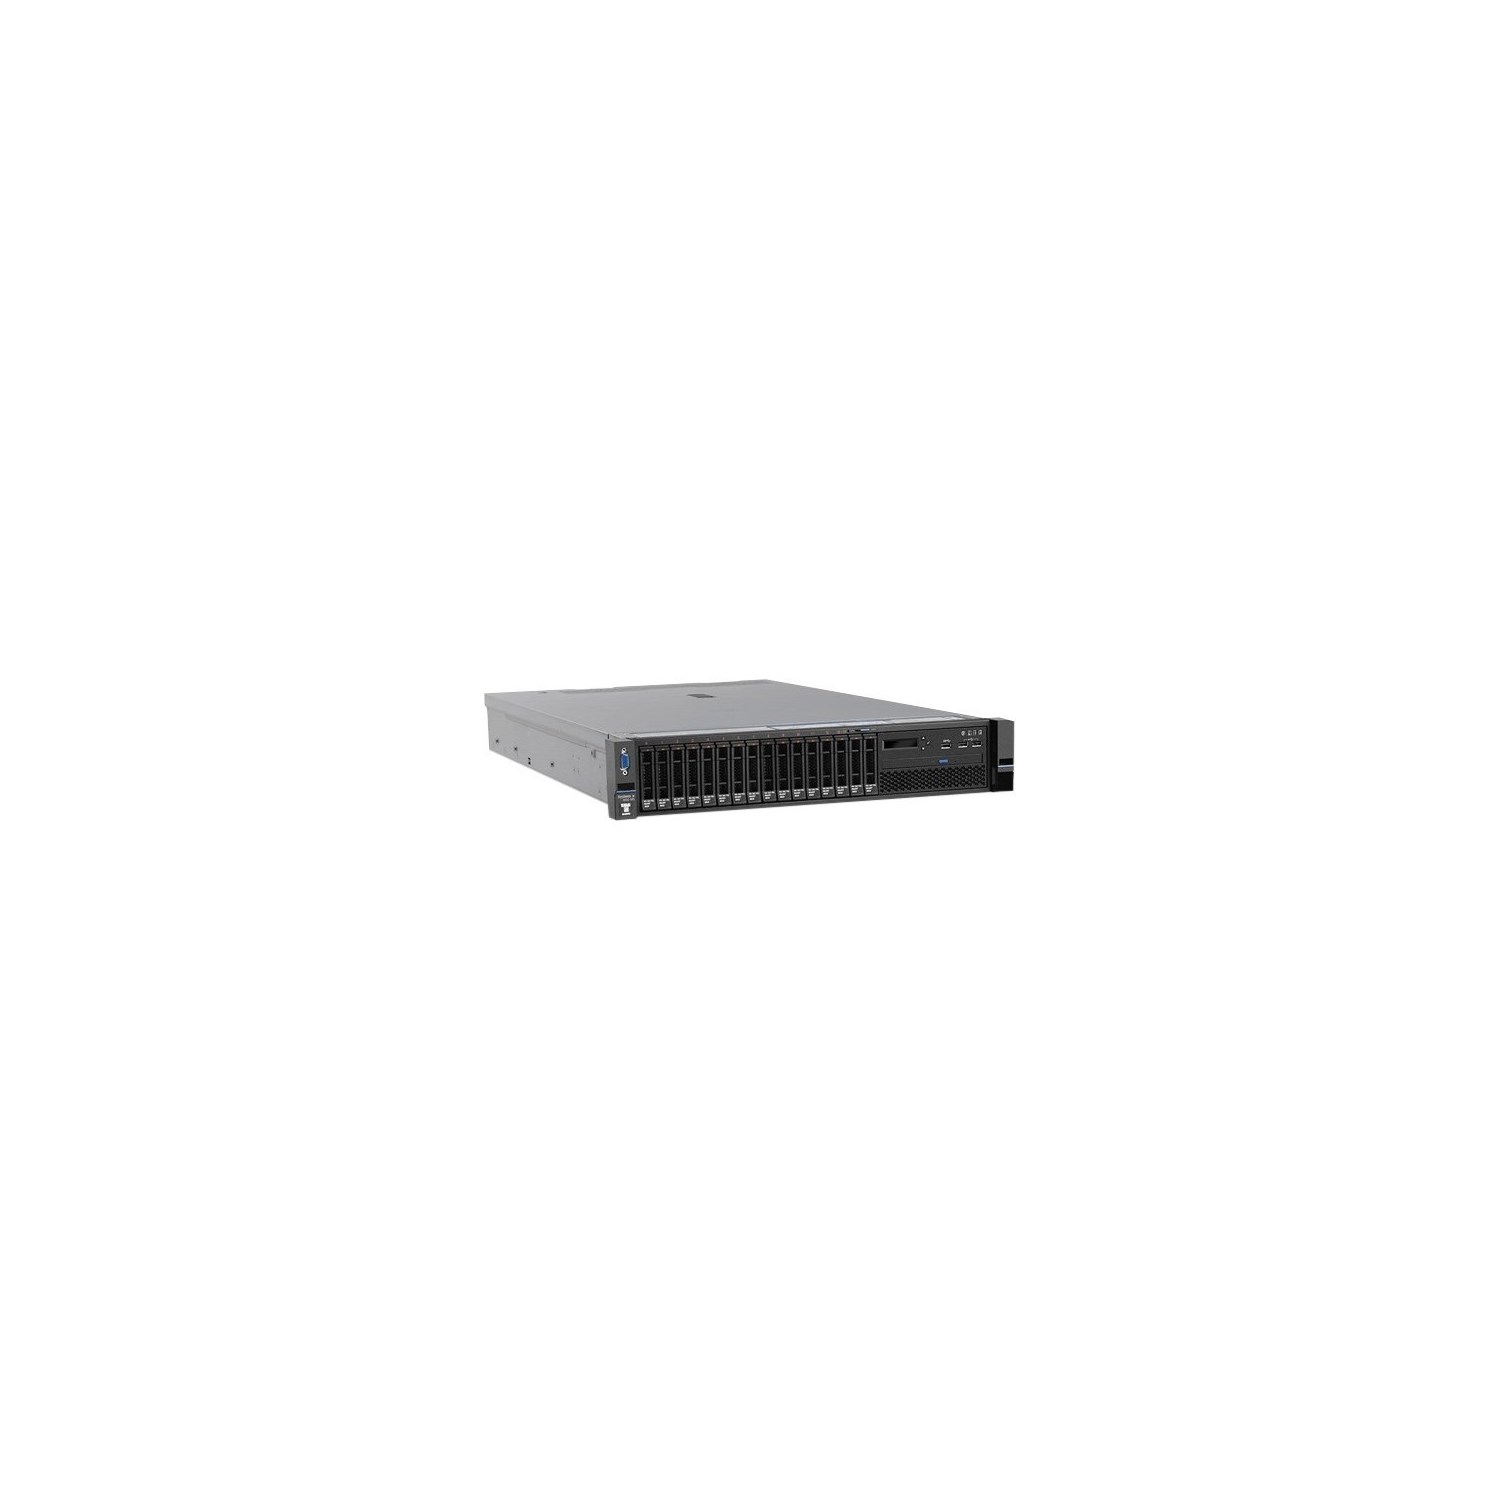 Buy Lenovo System X X3650 M5 8871c2m 2u Rack Mountable